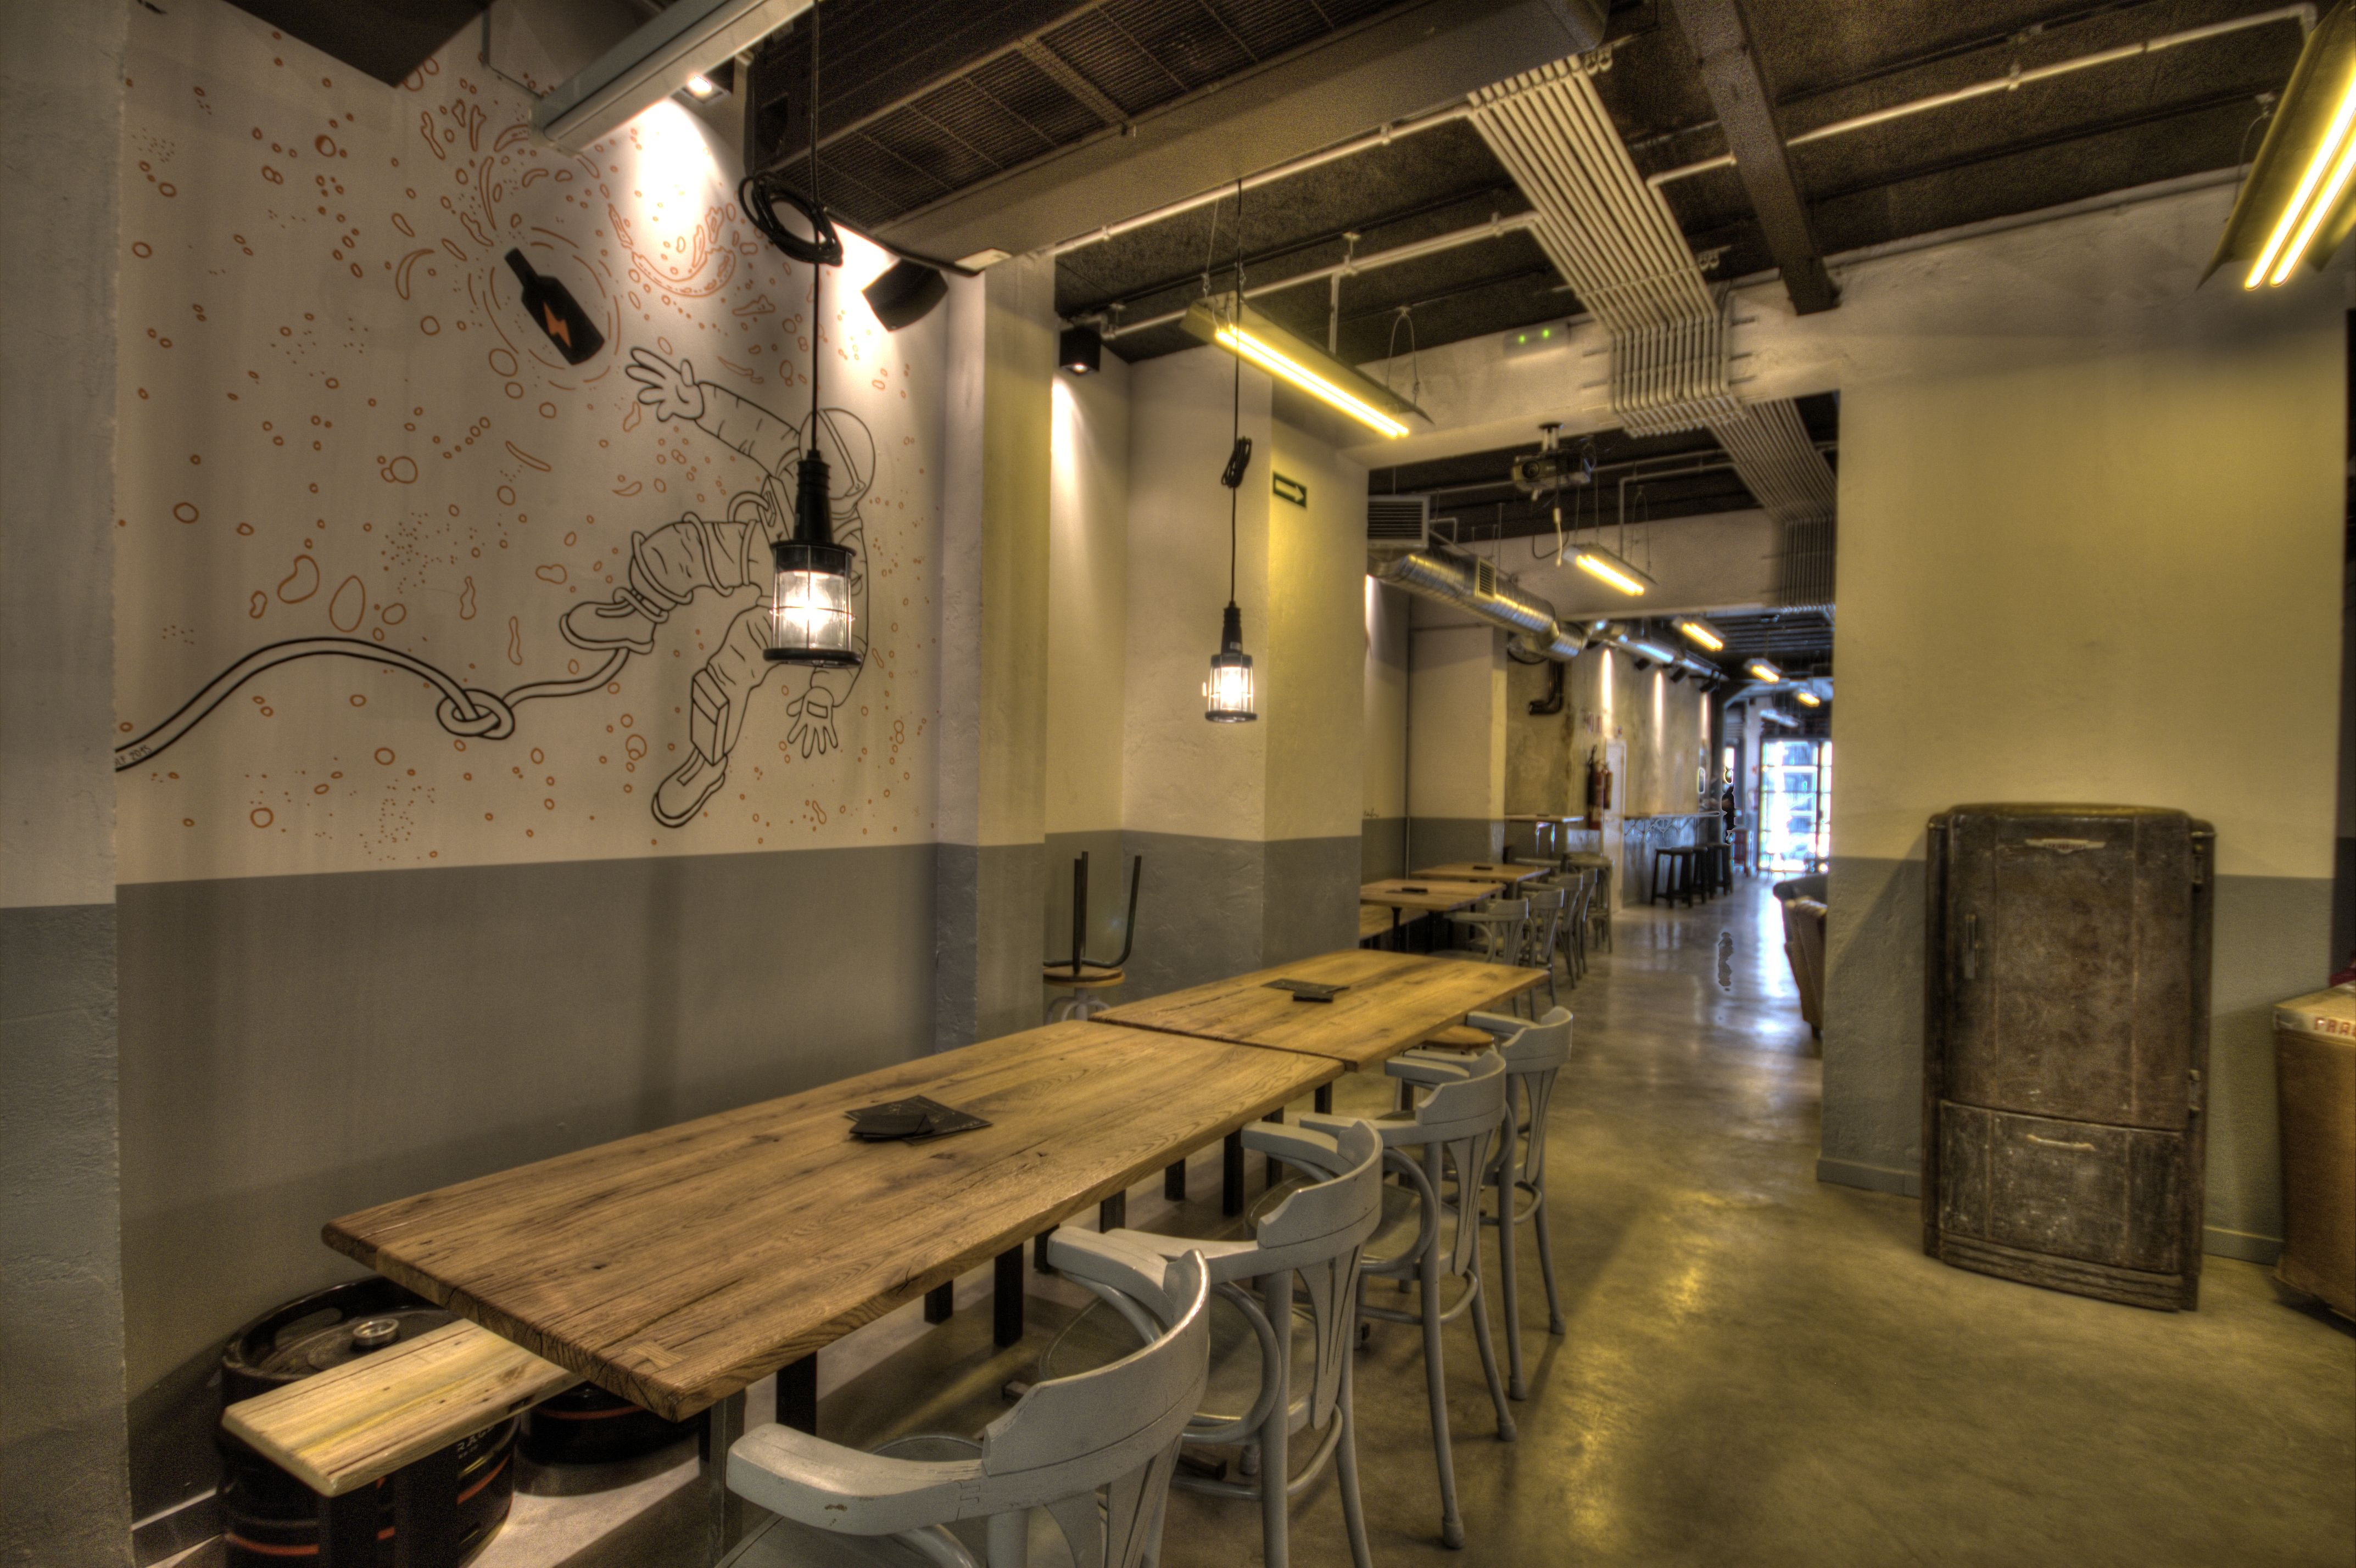 Beer, Barcelona, Craft Beer, Bar Designs, Lighting Design, Garages, Restaurant,